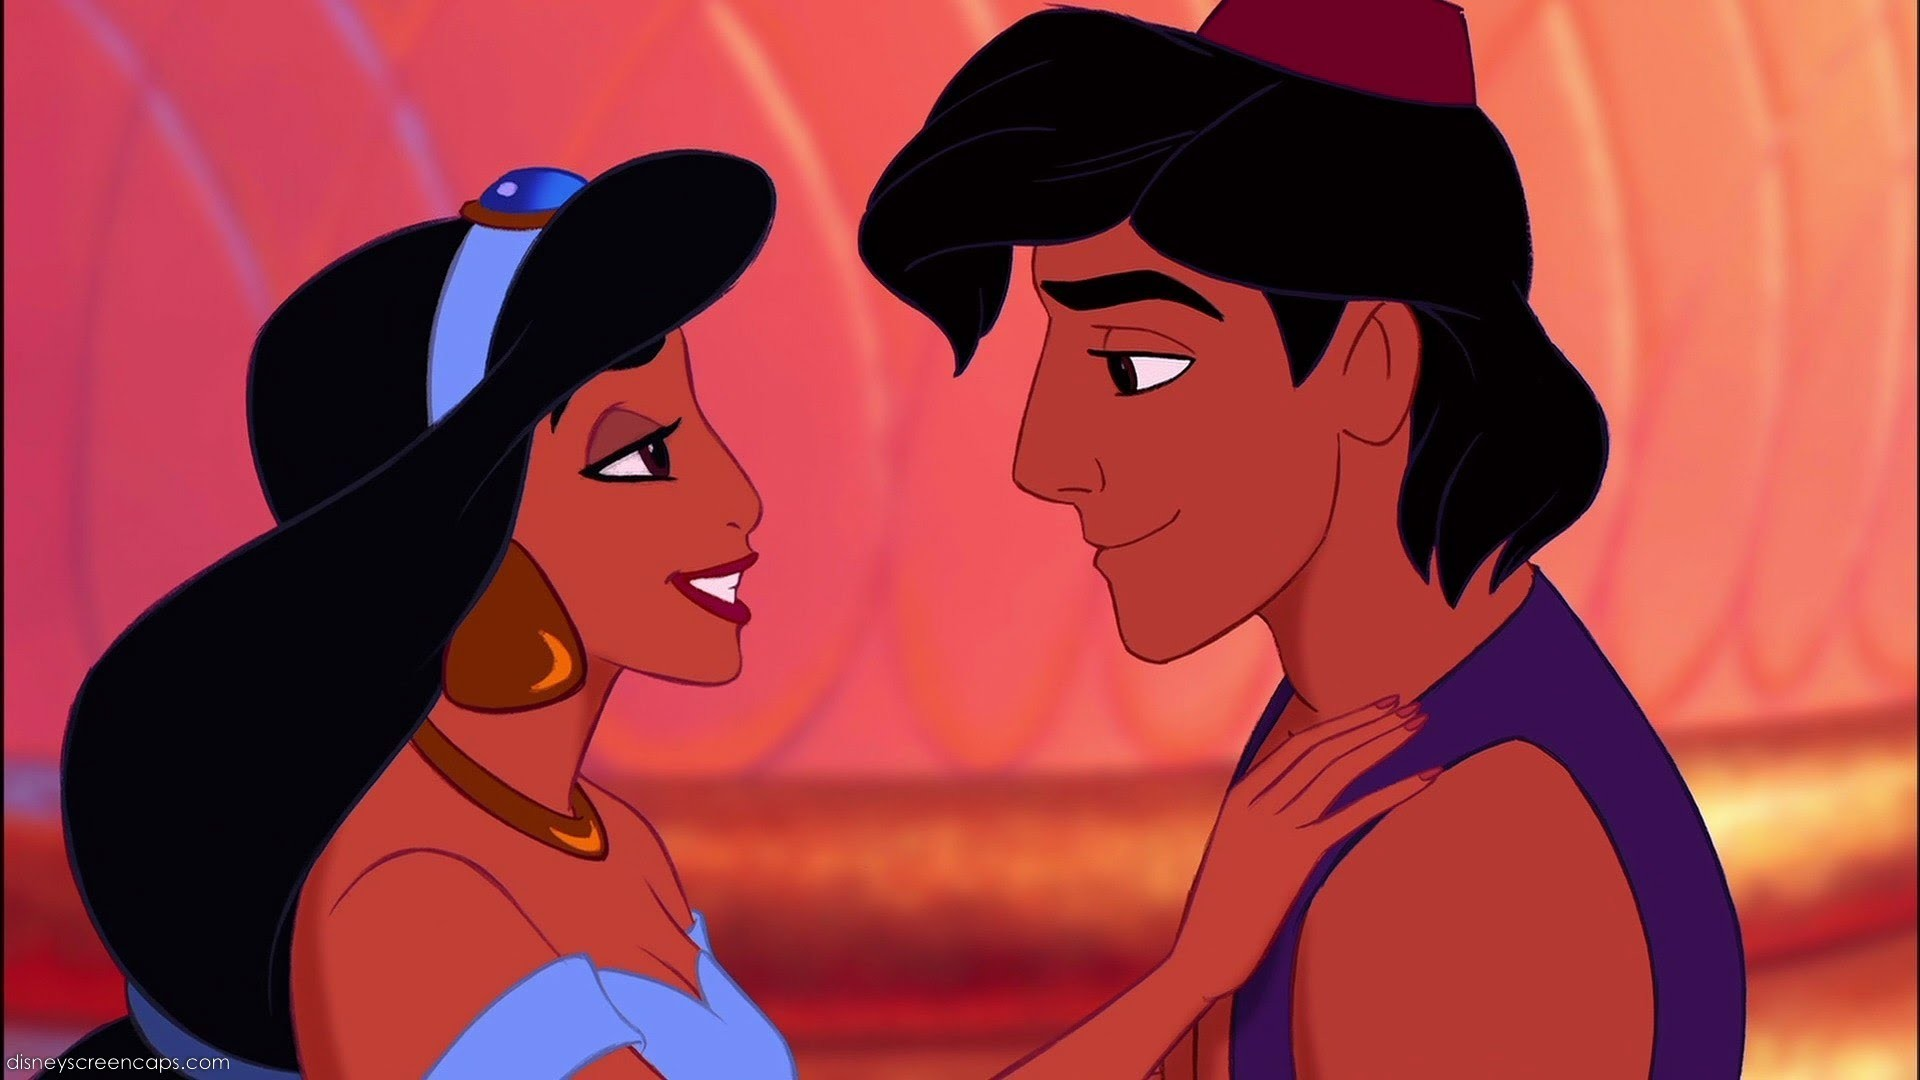 Res: 1920x1080, There Are Casting Struggles on Disney's Live-Action ALADDIN Movie